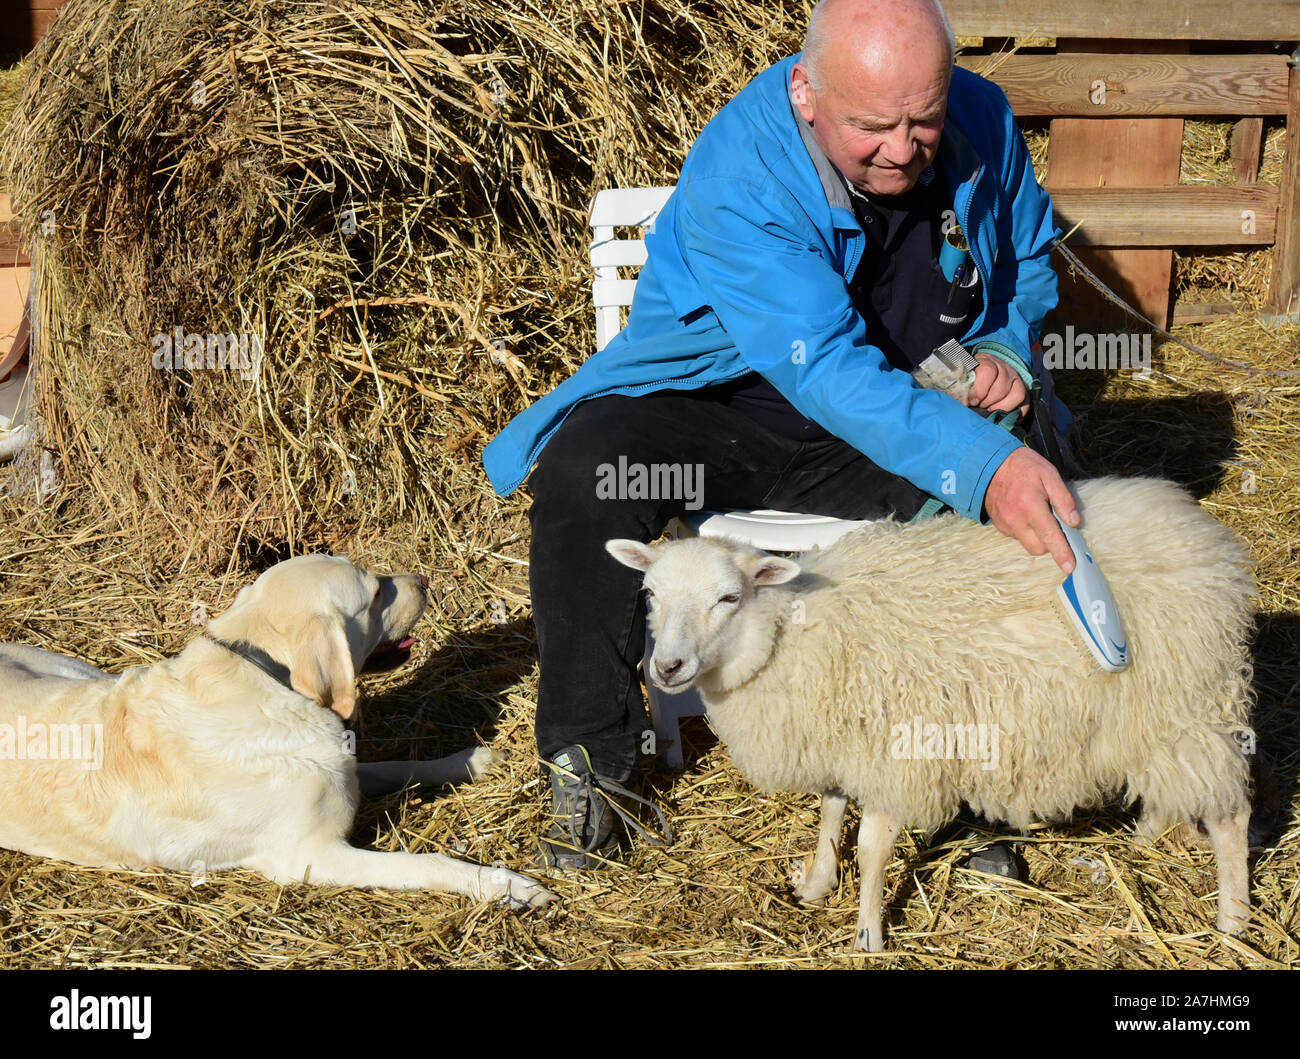 Schkeuditz, Germany. 14th Oct, 2019. Werner Dreßler combs his lamb Nanni before he walks him, Labrador Emmy (l) and the other animals. The 79-year-old trained master toolmaker takes the five animals for a walk in the city every day and is an eye-catcher for locals and visitors alike. The lamb Nanni was raised with the bottle and is accustomed to the walks with his mama sheep and the dogs from an early age. Credit: Waltraud Grubitzsch/dpa-Zentralbild/ZB/dpa/Alamy Live News Stock Photo